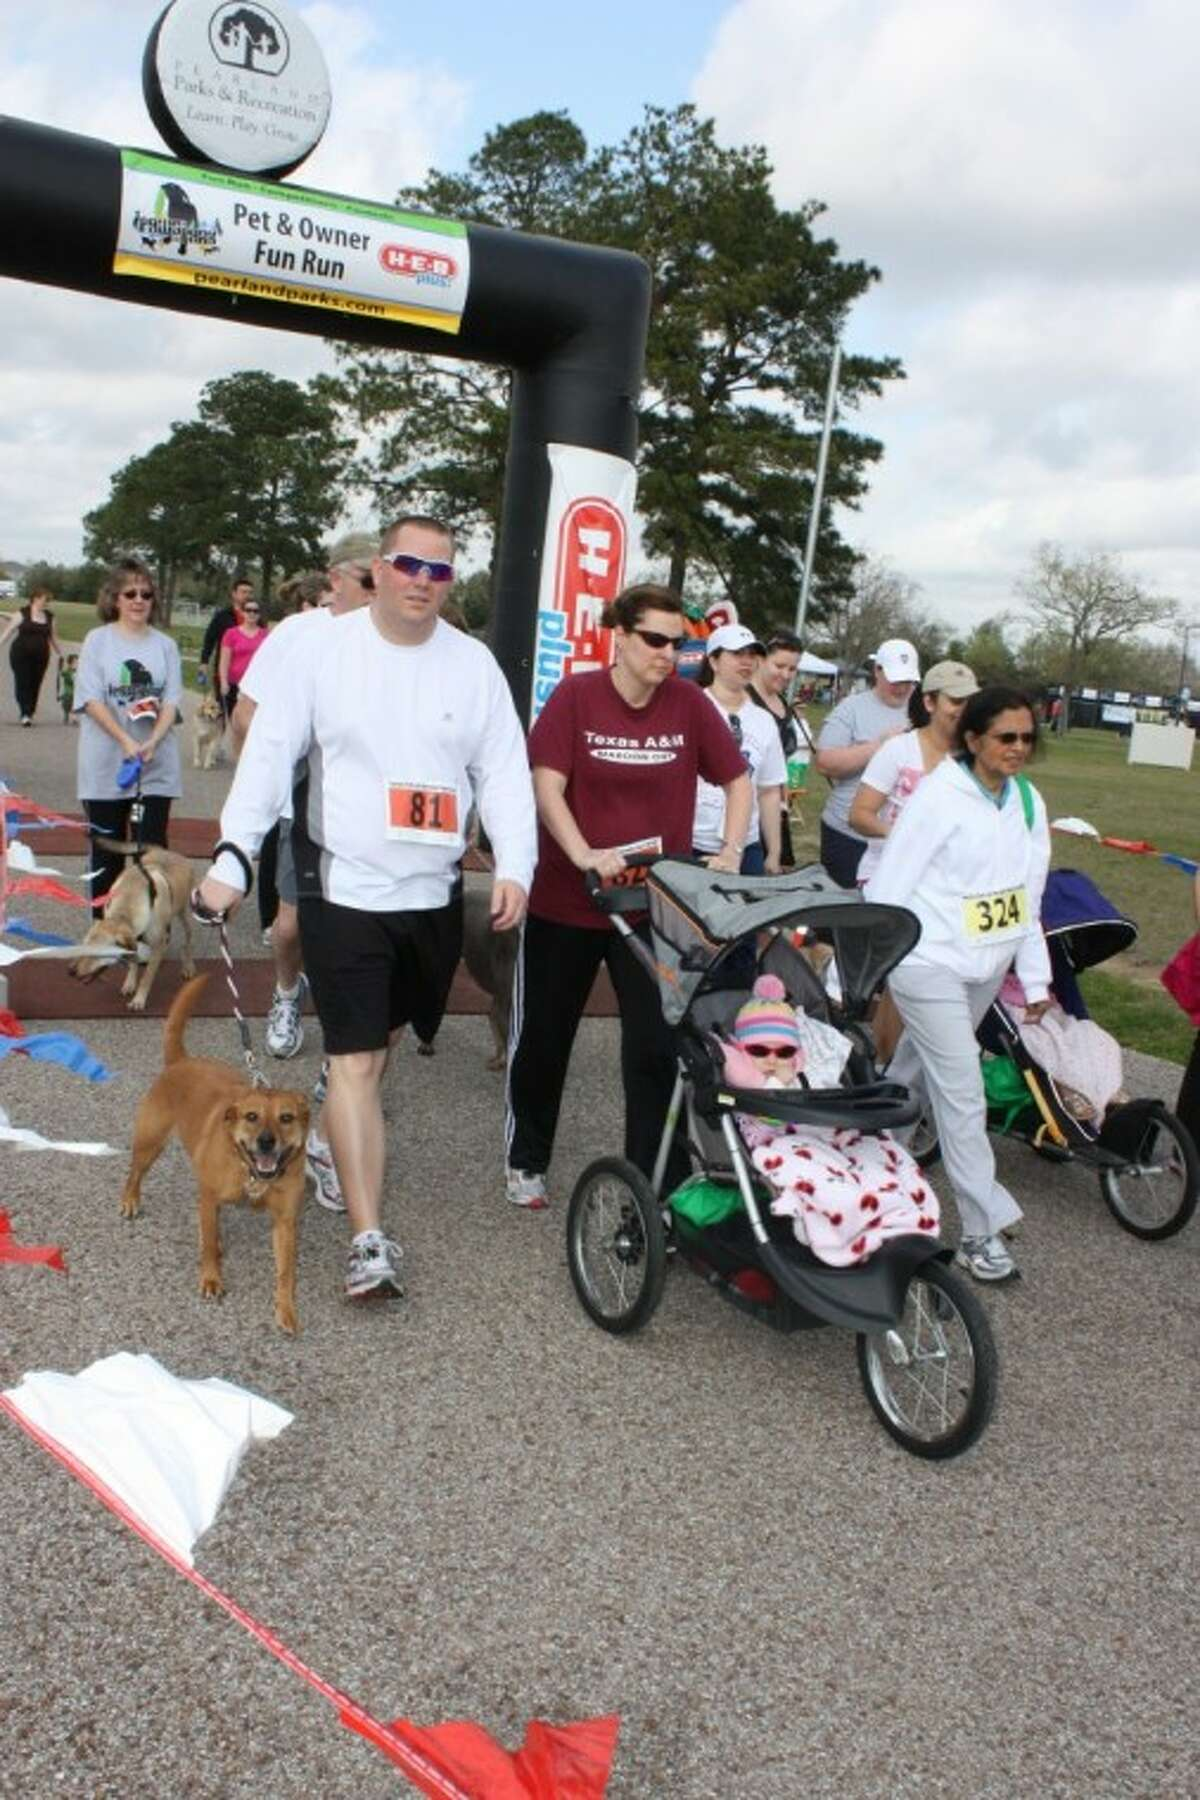 Pearland is hosting a dog-friendly fun run as part of their yearly Paws in the Park celebration on Saturday, March 31. The HEB Plus! Pet and Owner Fun Run includes a 1K, 3K and 5K Race. Runners are invited to run with their dogs.